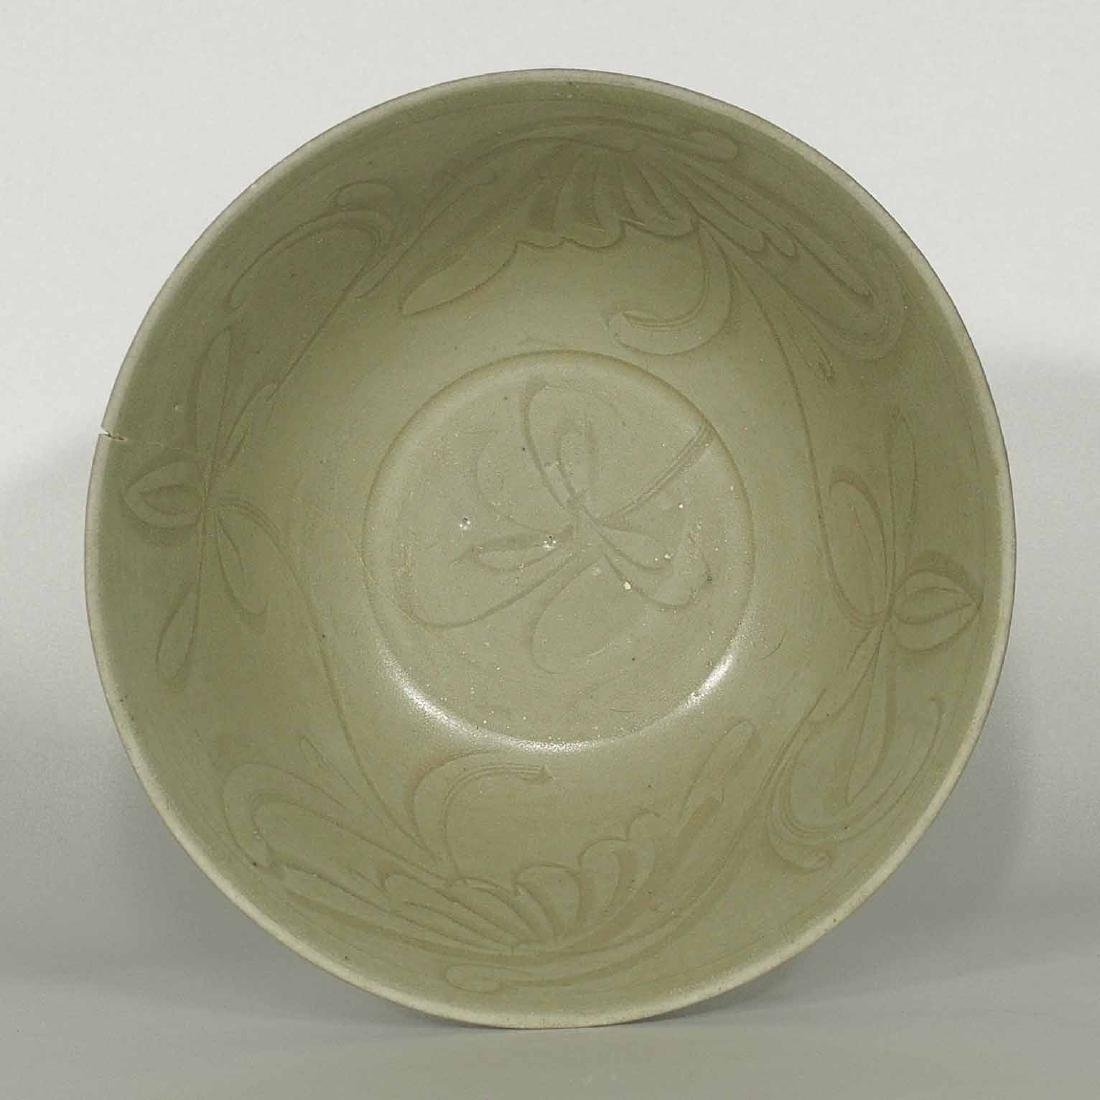 Large Yue Celadon Bowl with Incised Design, Ming